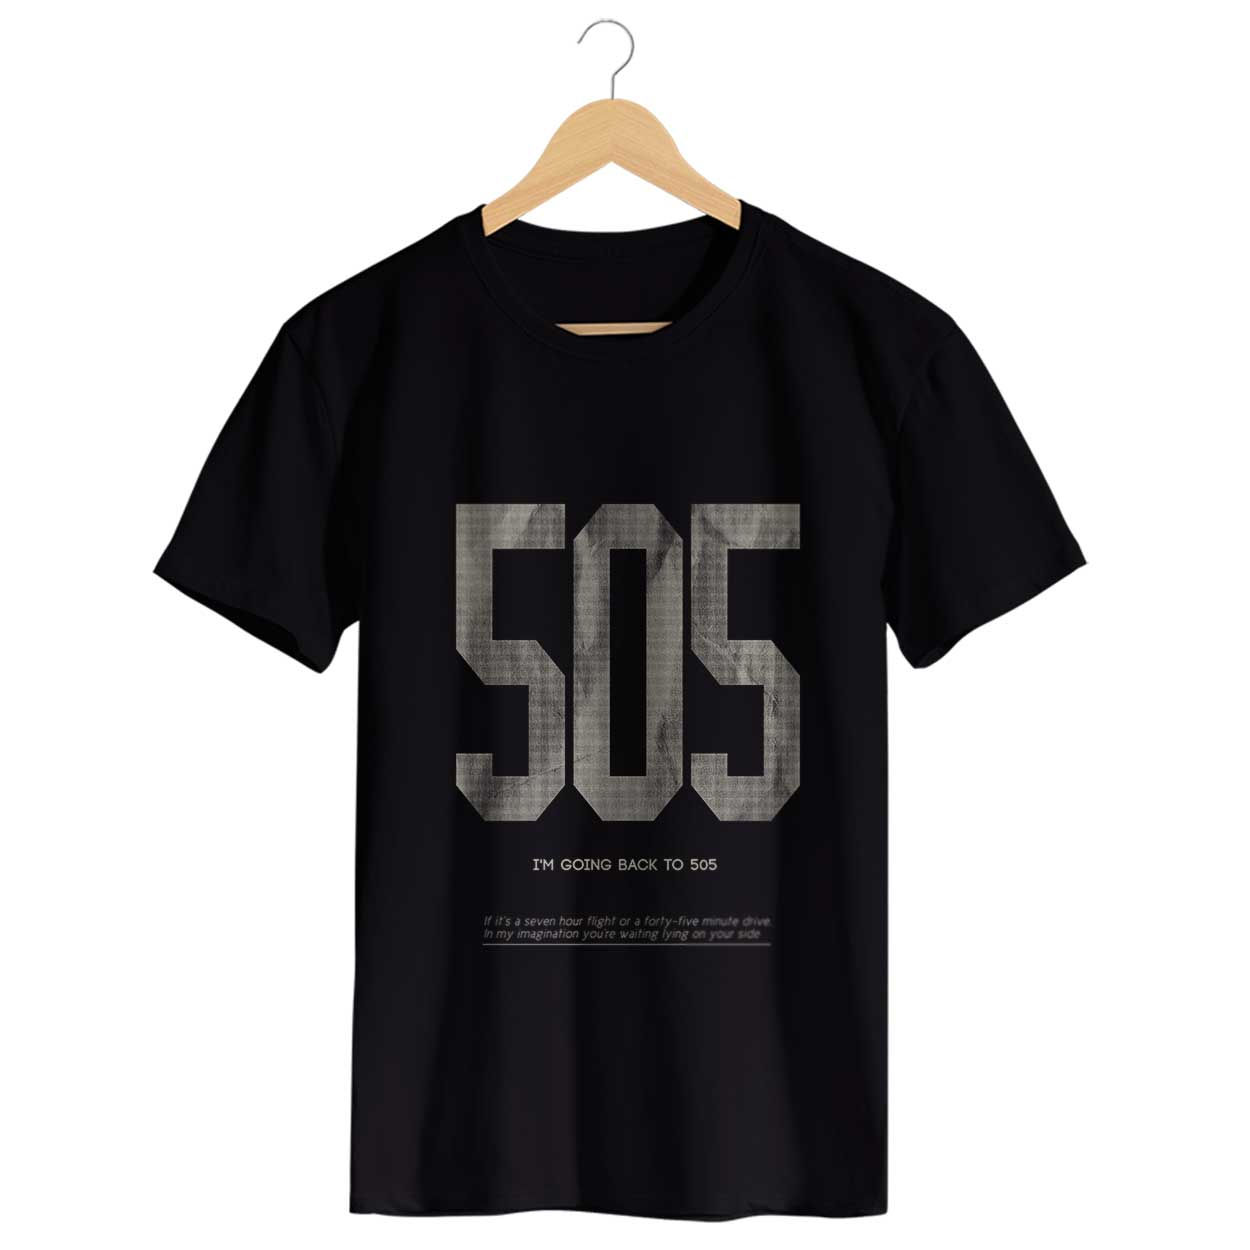 Camiseta - Artic Monkeys - 505 - Masculino